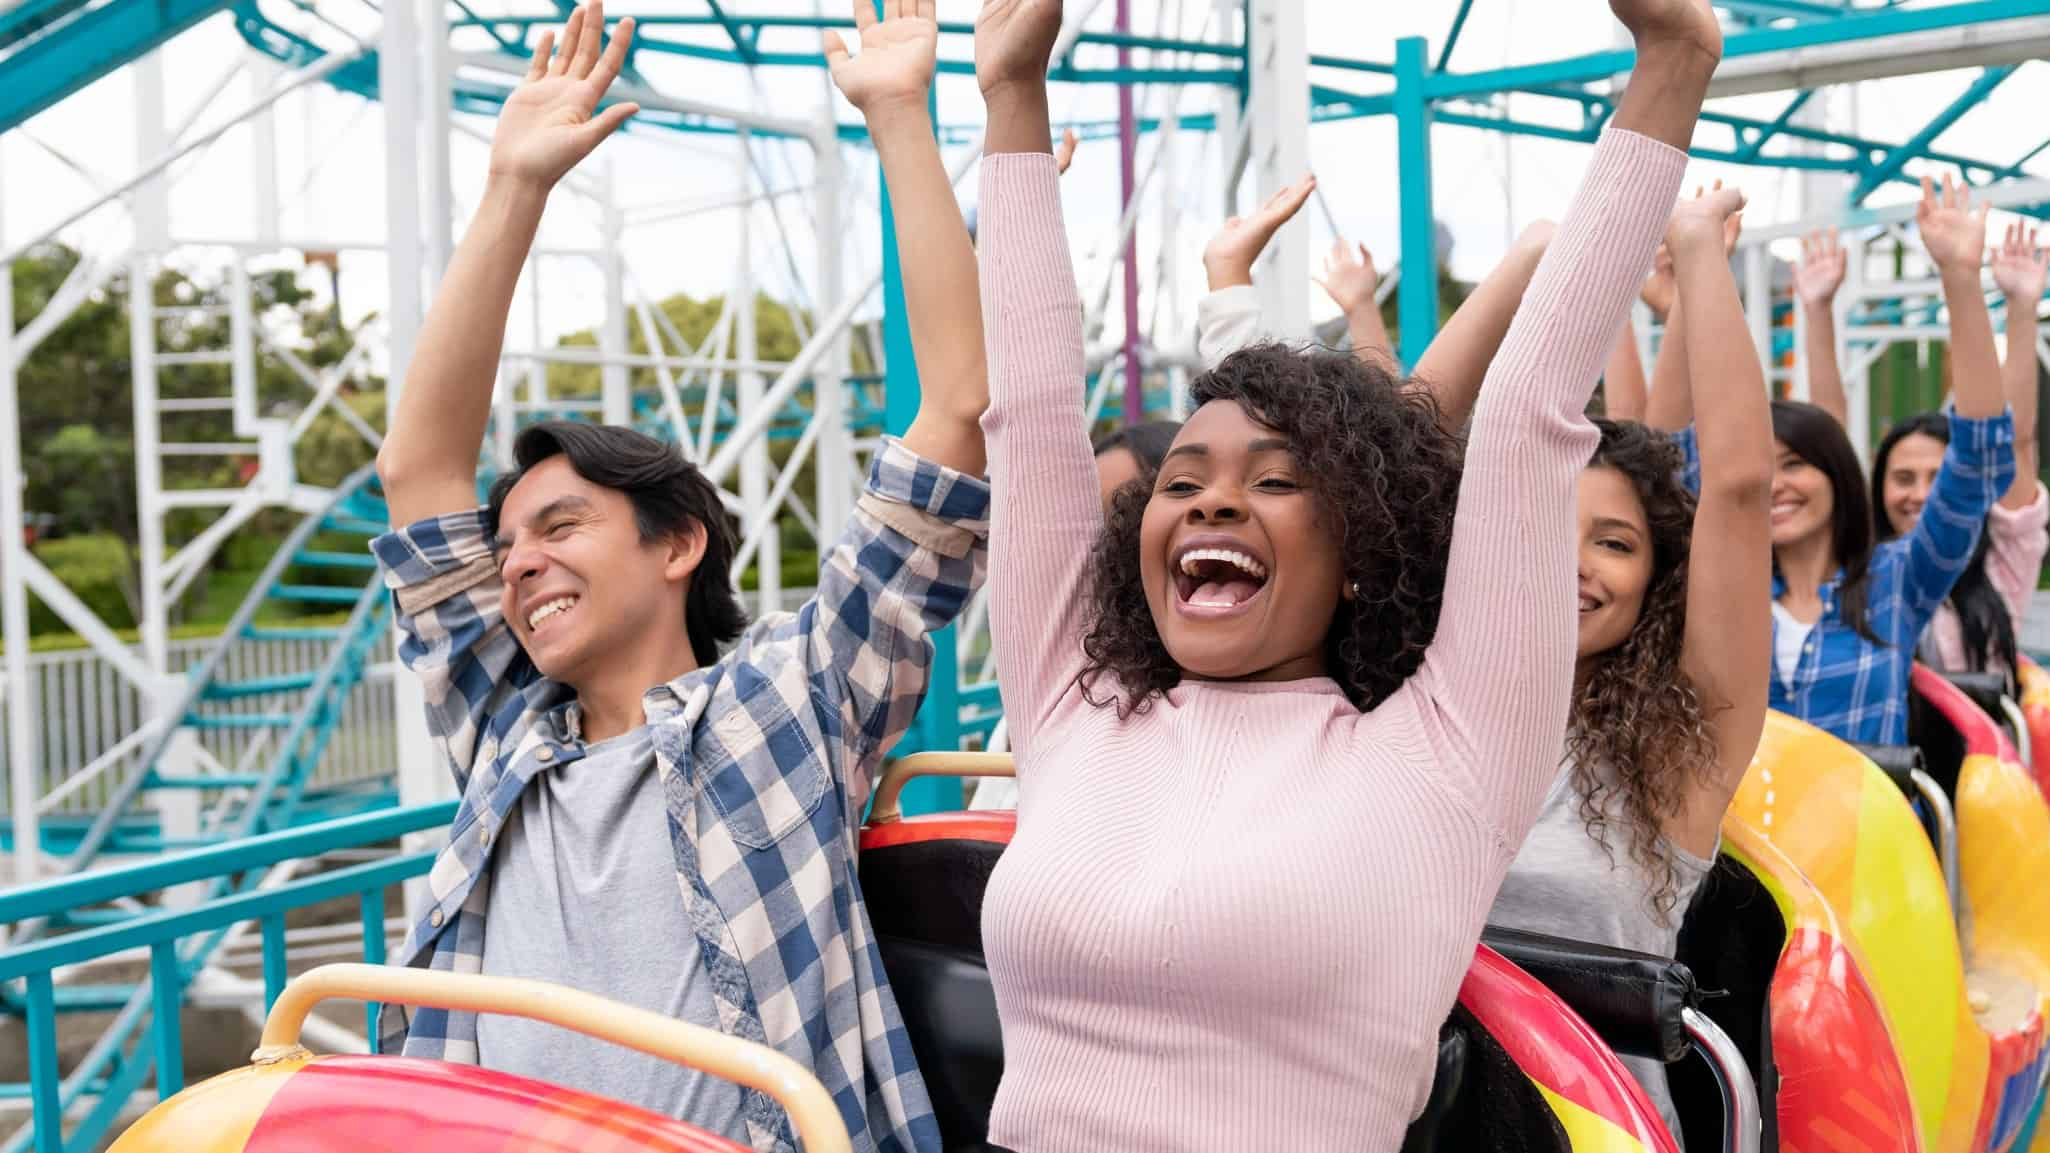 two people sit side by side on a rollercoaster ride with their hands raised in the air and happy smiles on their faces